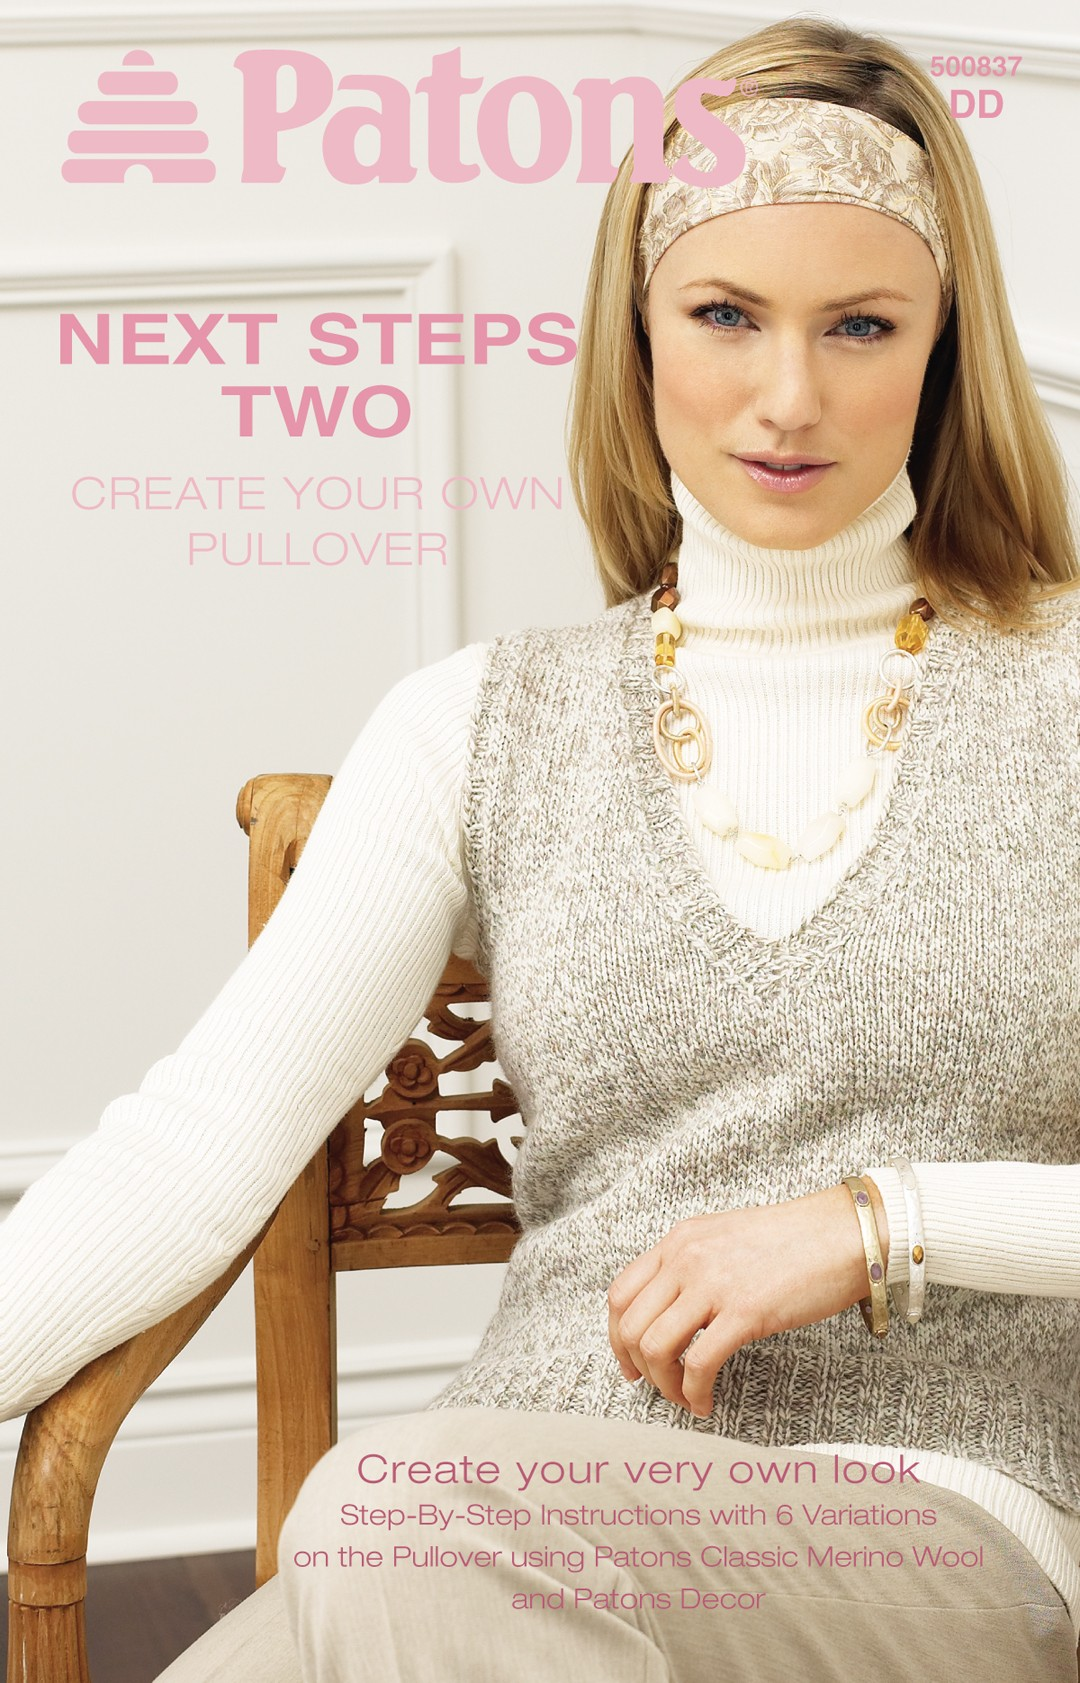 Next Steps Two - Create Your Own Pullover